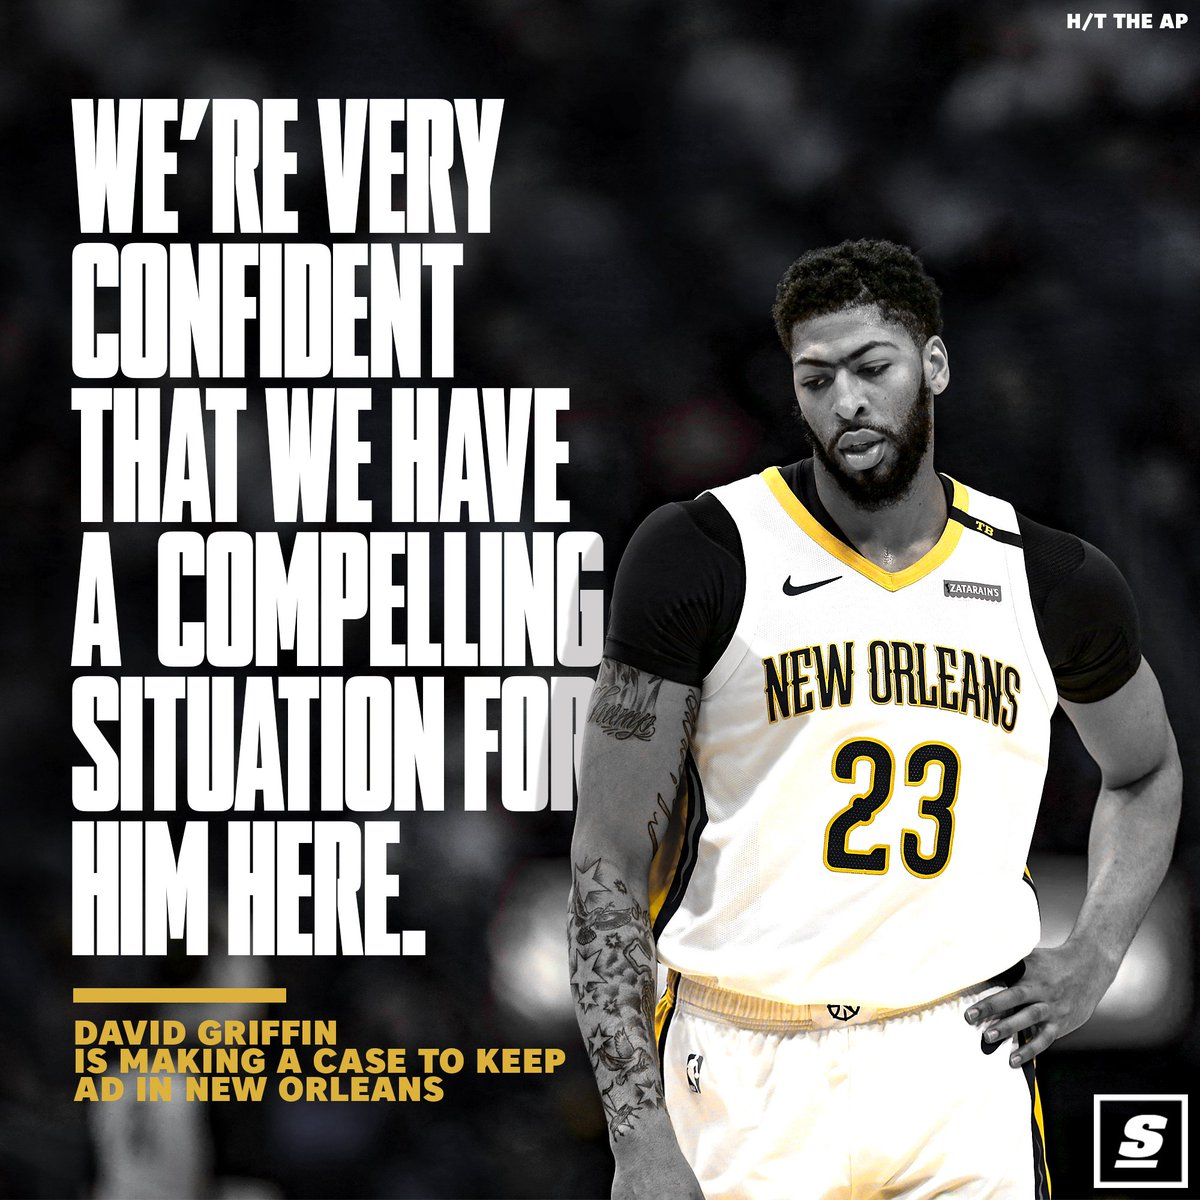 David Griffin says the Pelicans are creating the 'right environment' to keep Anthony Davis. http://thesco.re/2WjgeJM